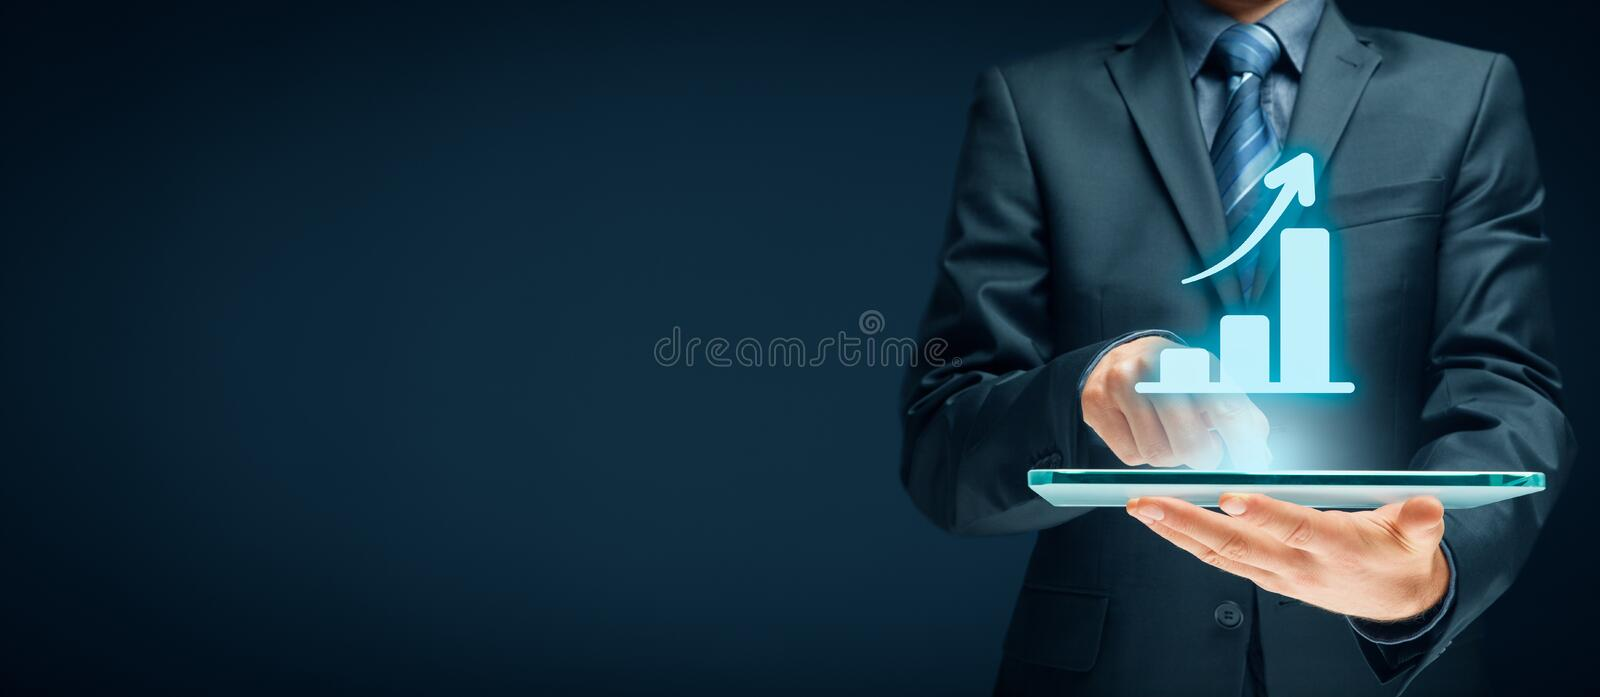 Business growth analysis. Concept. Businessman plan growth and increase of positive indicators in his business stock photo